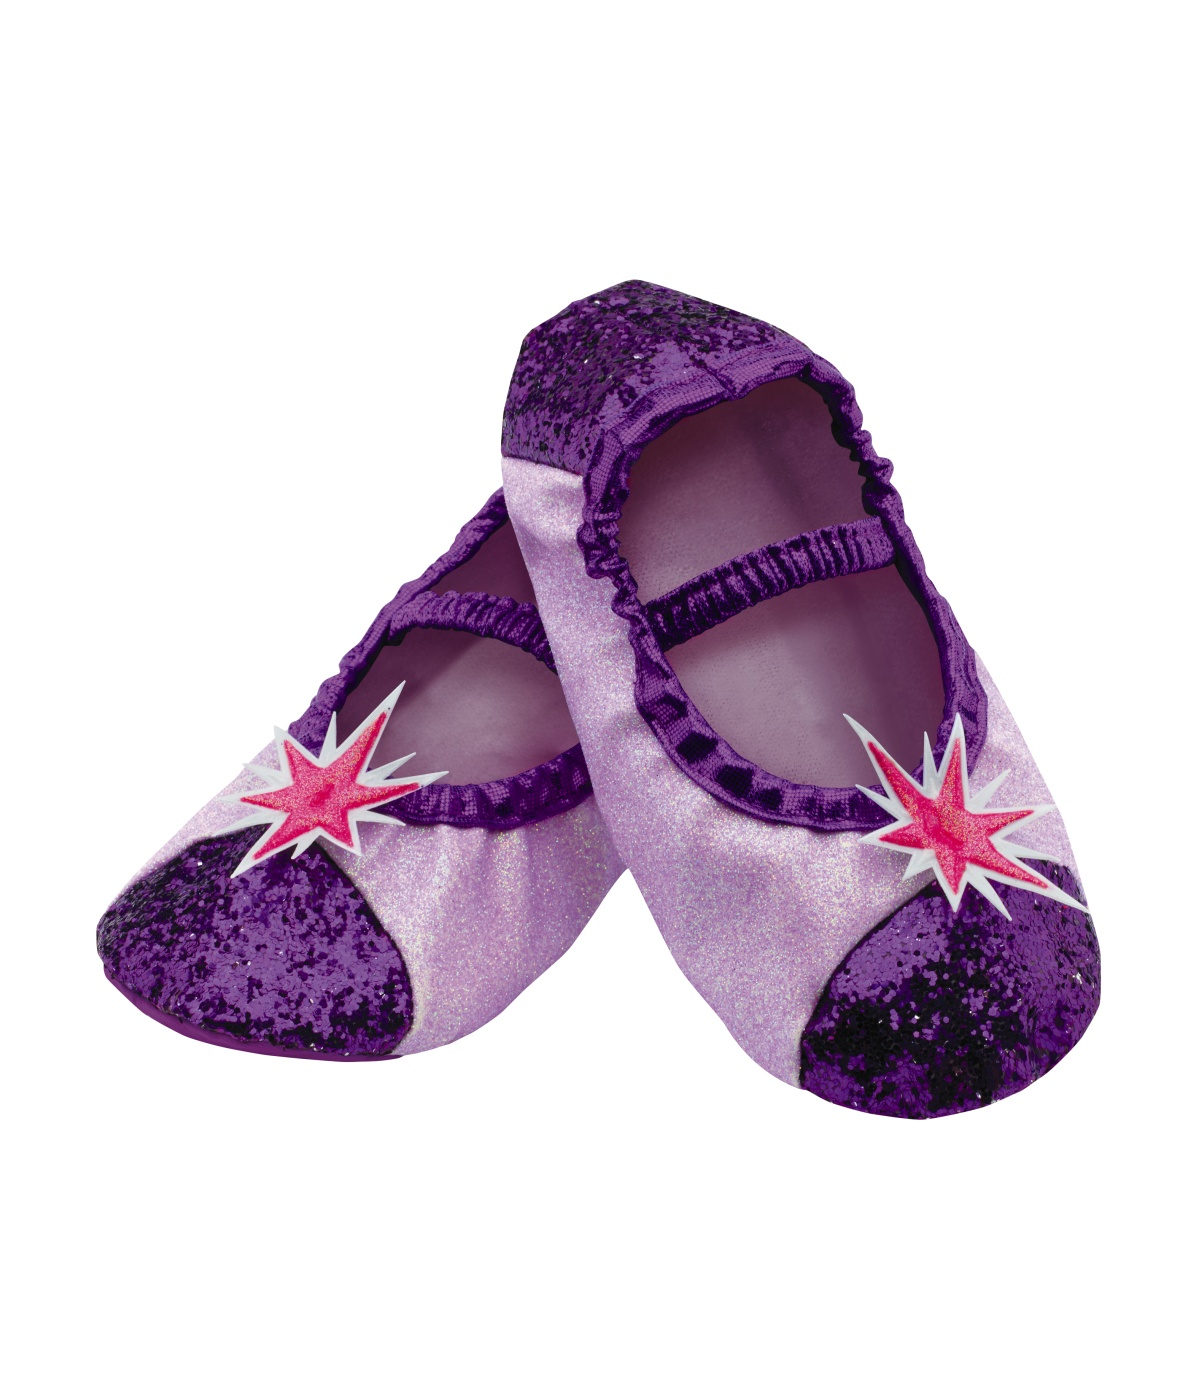 My Little Pony Twilight Girls Slippers